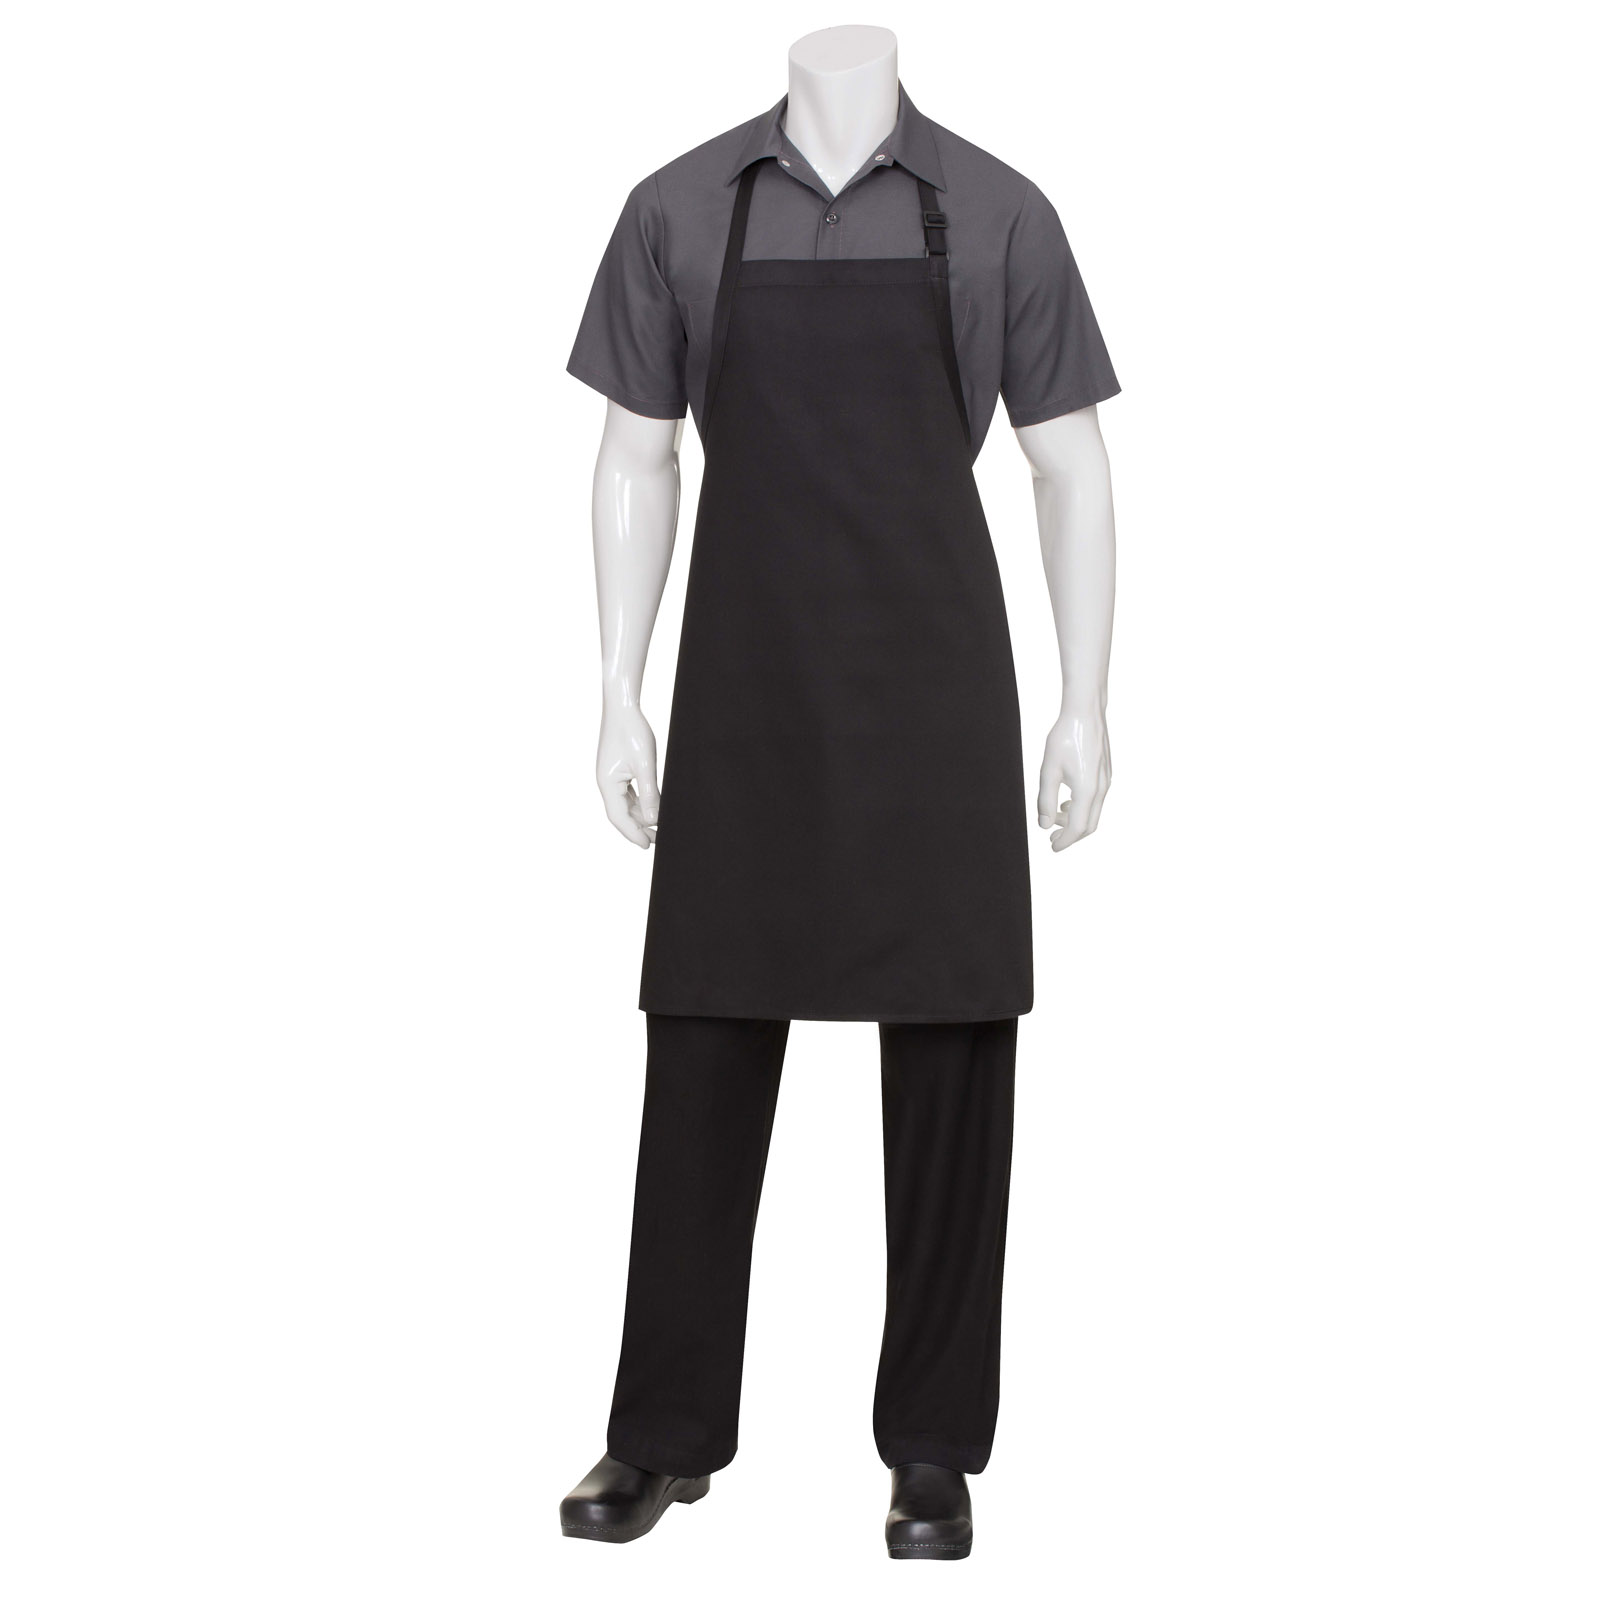 Chef Works F8 GRY0 bib apron